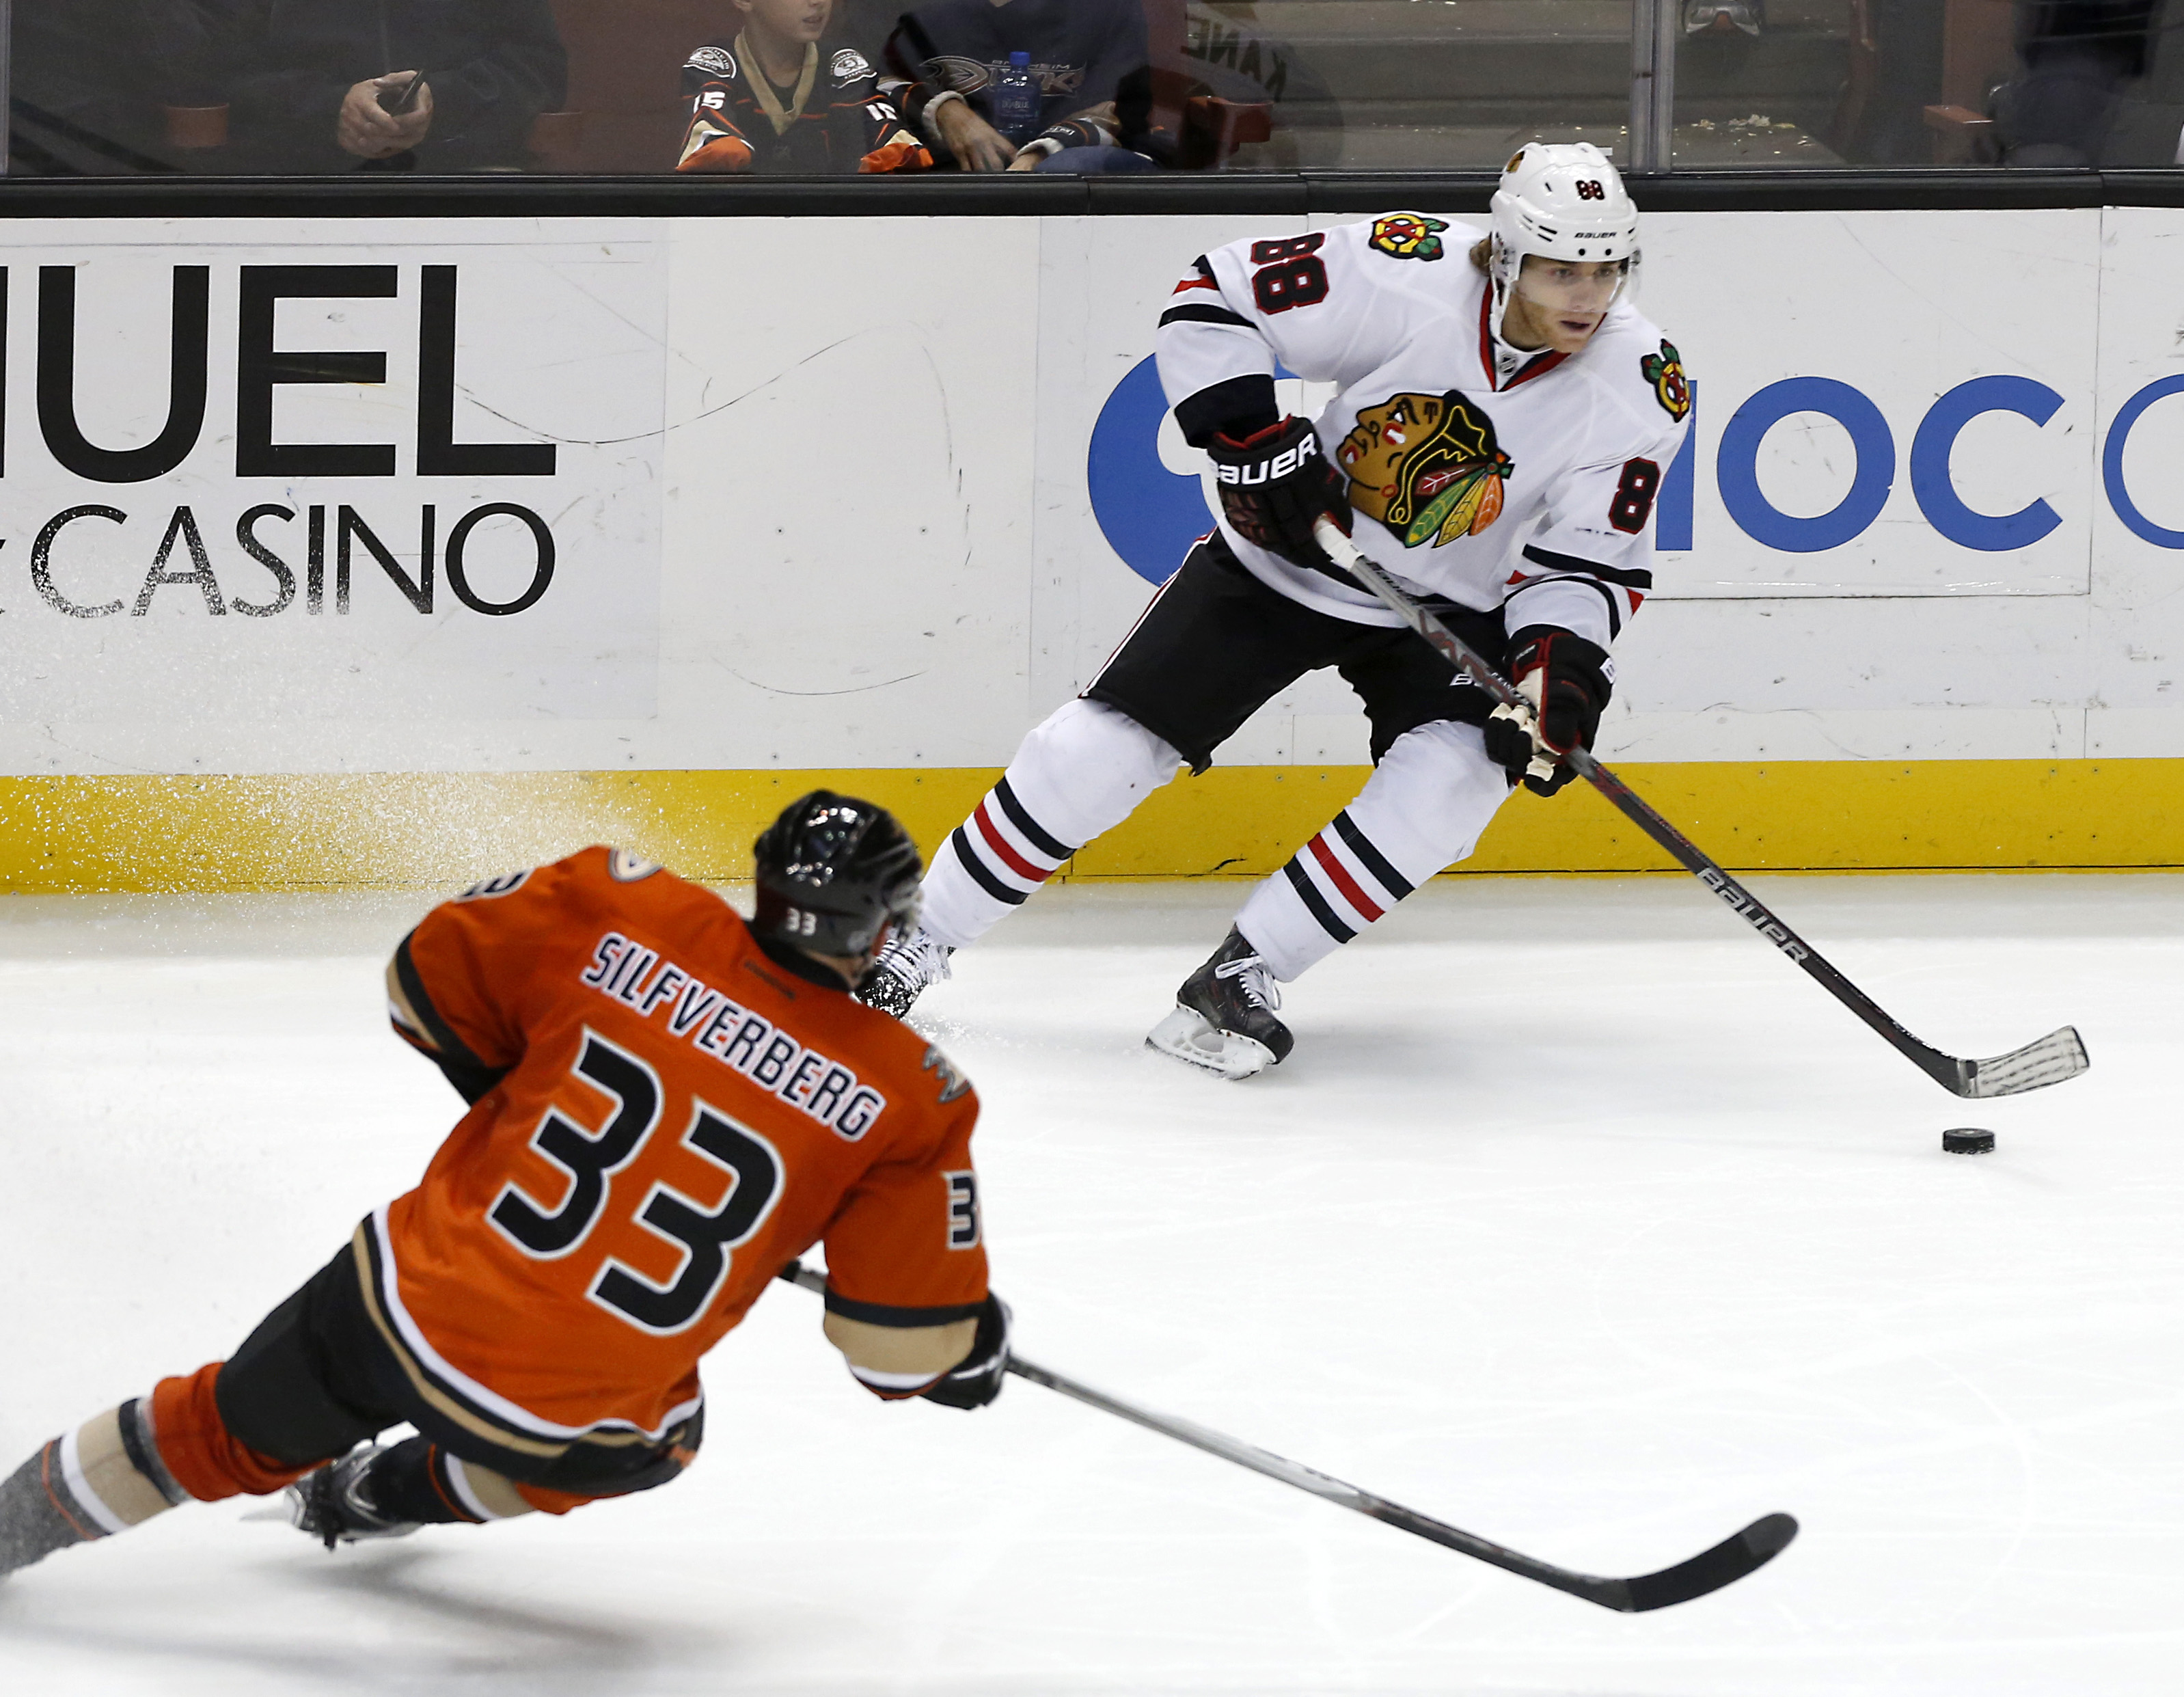 Chicago Blackhawks right wing Patrick Kane (88) looks to pass as Anaheim Ducks' Jakob Silfverberg (33) defends during the third period of an NHL hockey game in Anaheim, Calif., Friday, Nov. 27, 2015. Chicago won in overtime 3-2. (AP Photo/Christine Cotter